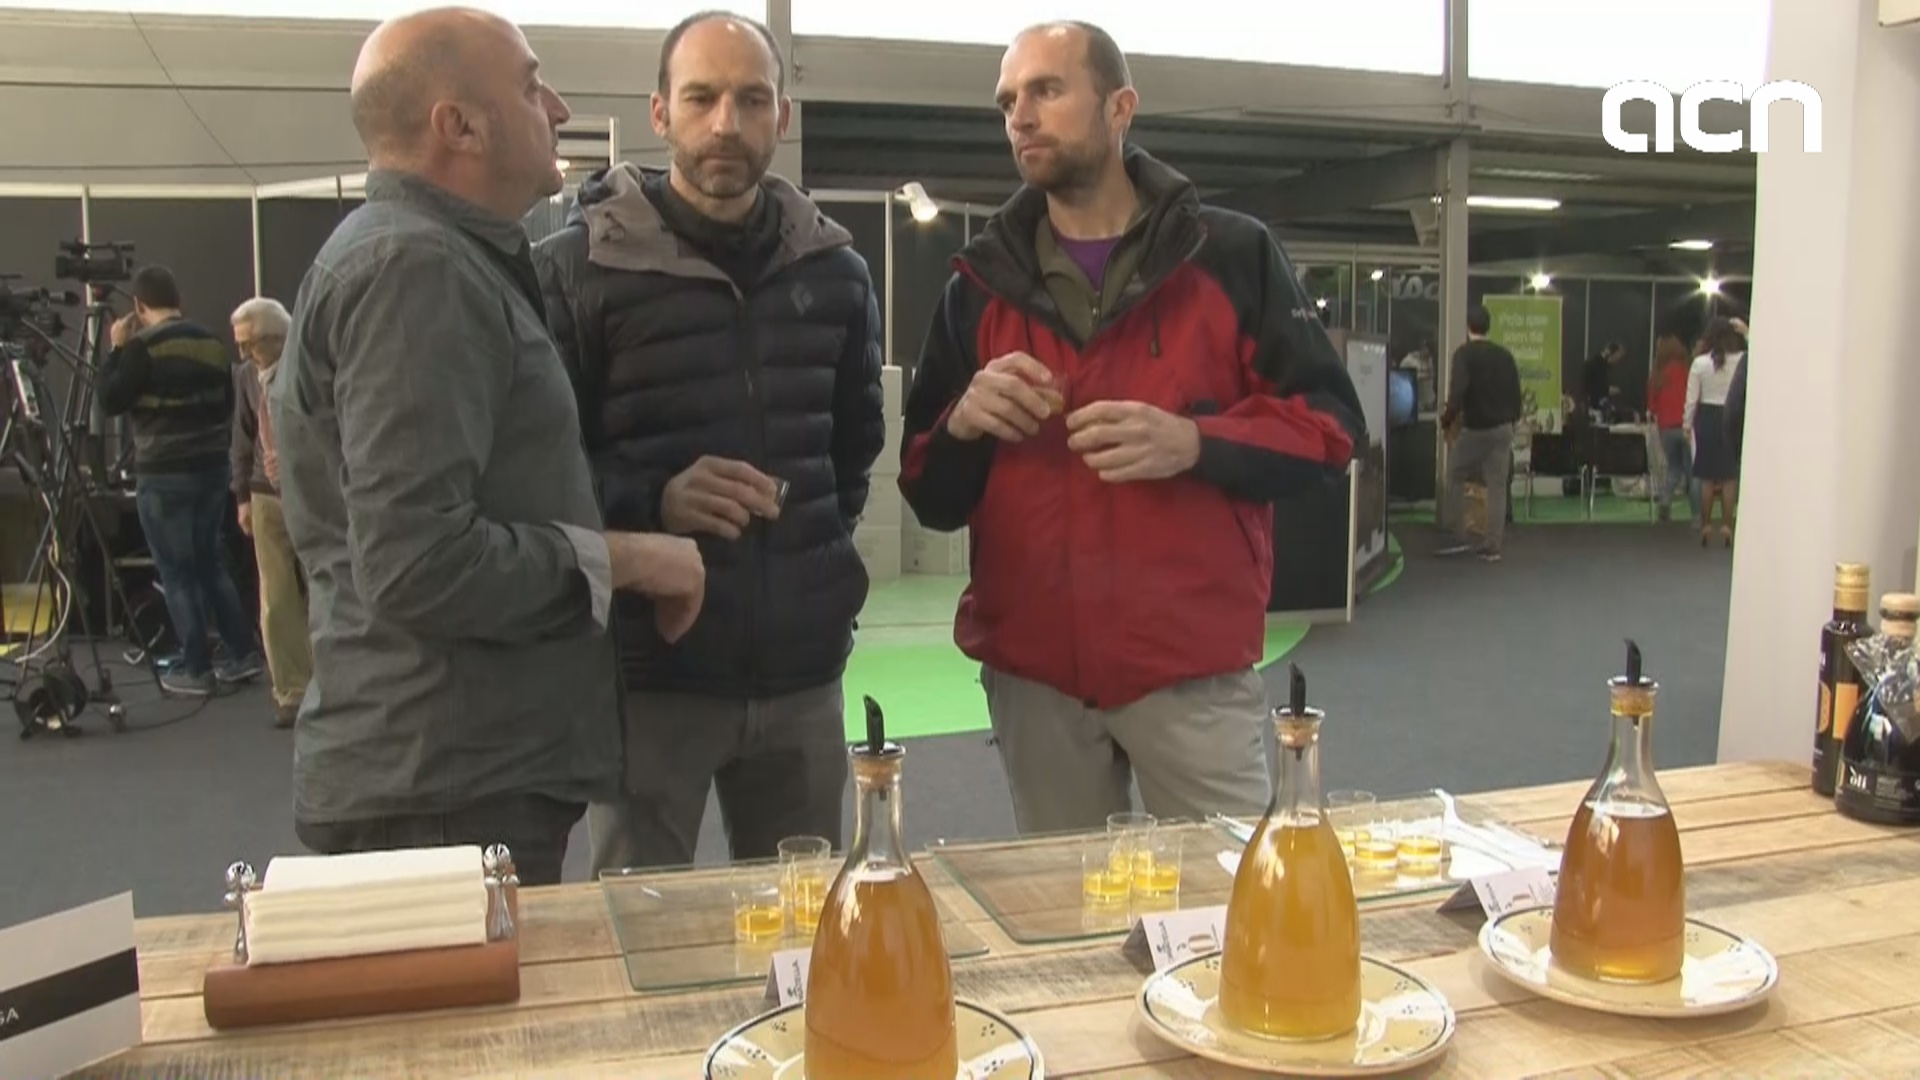 Garrigues olive oil fair kicks off with record number of exhibitors